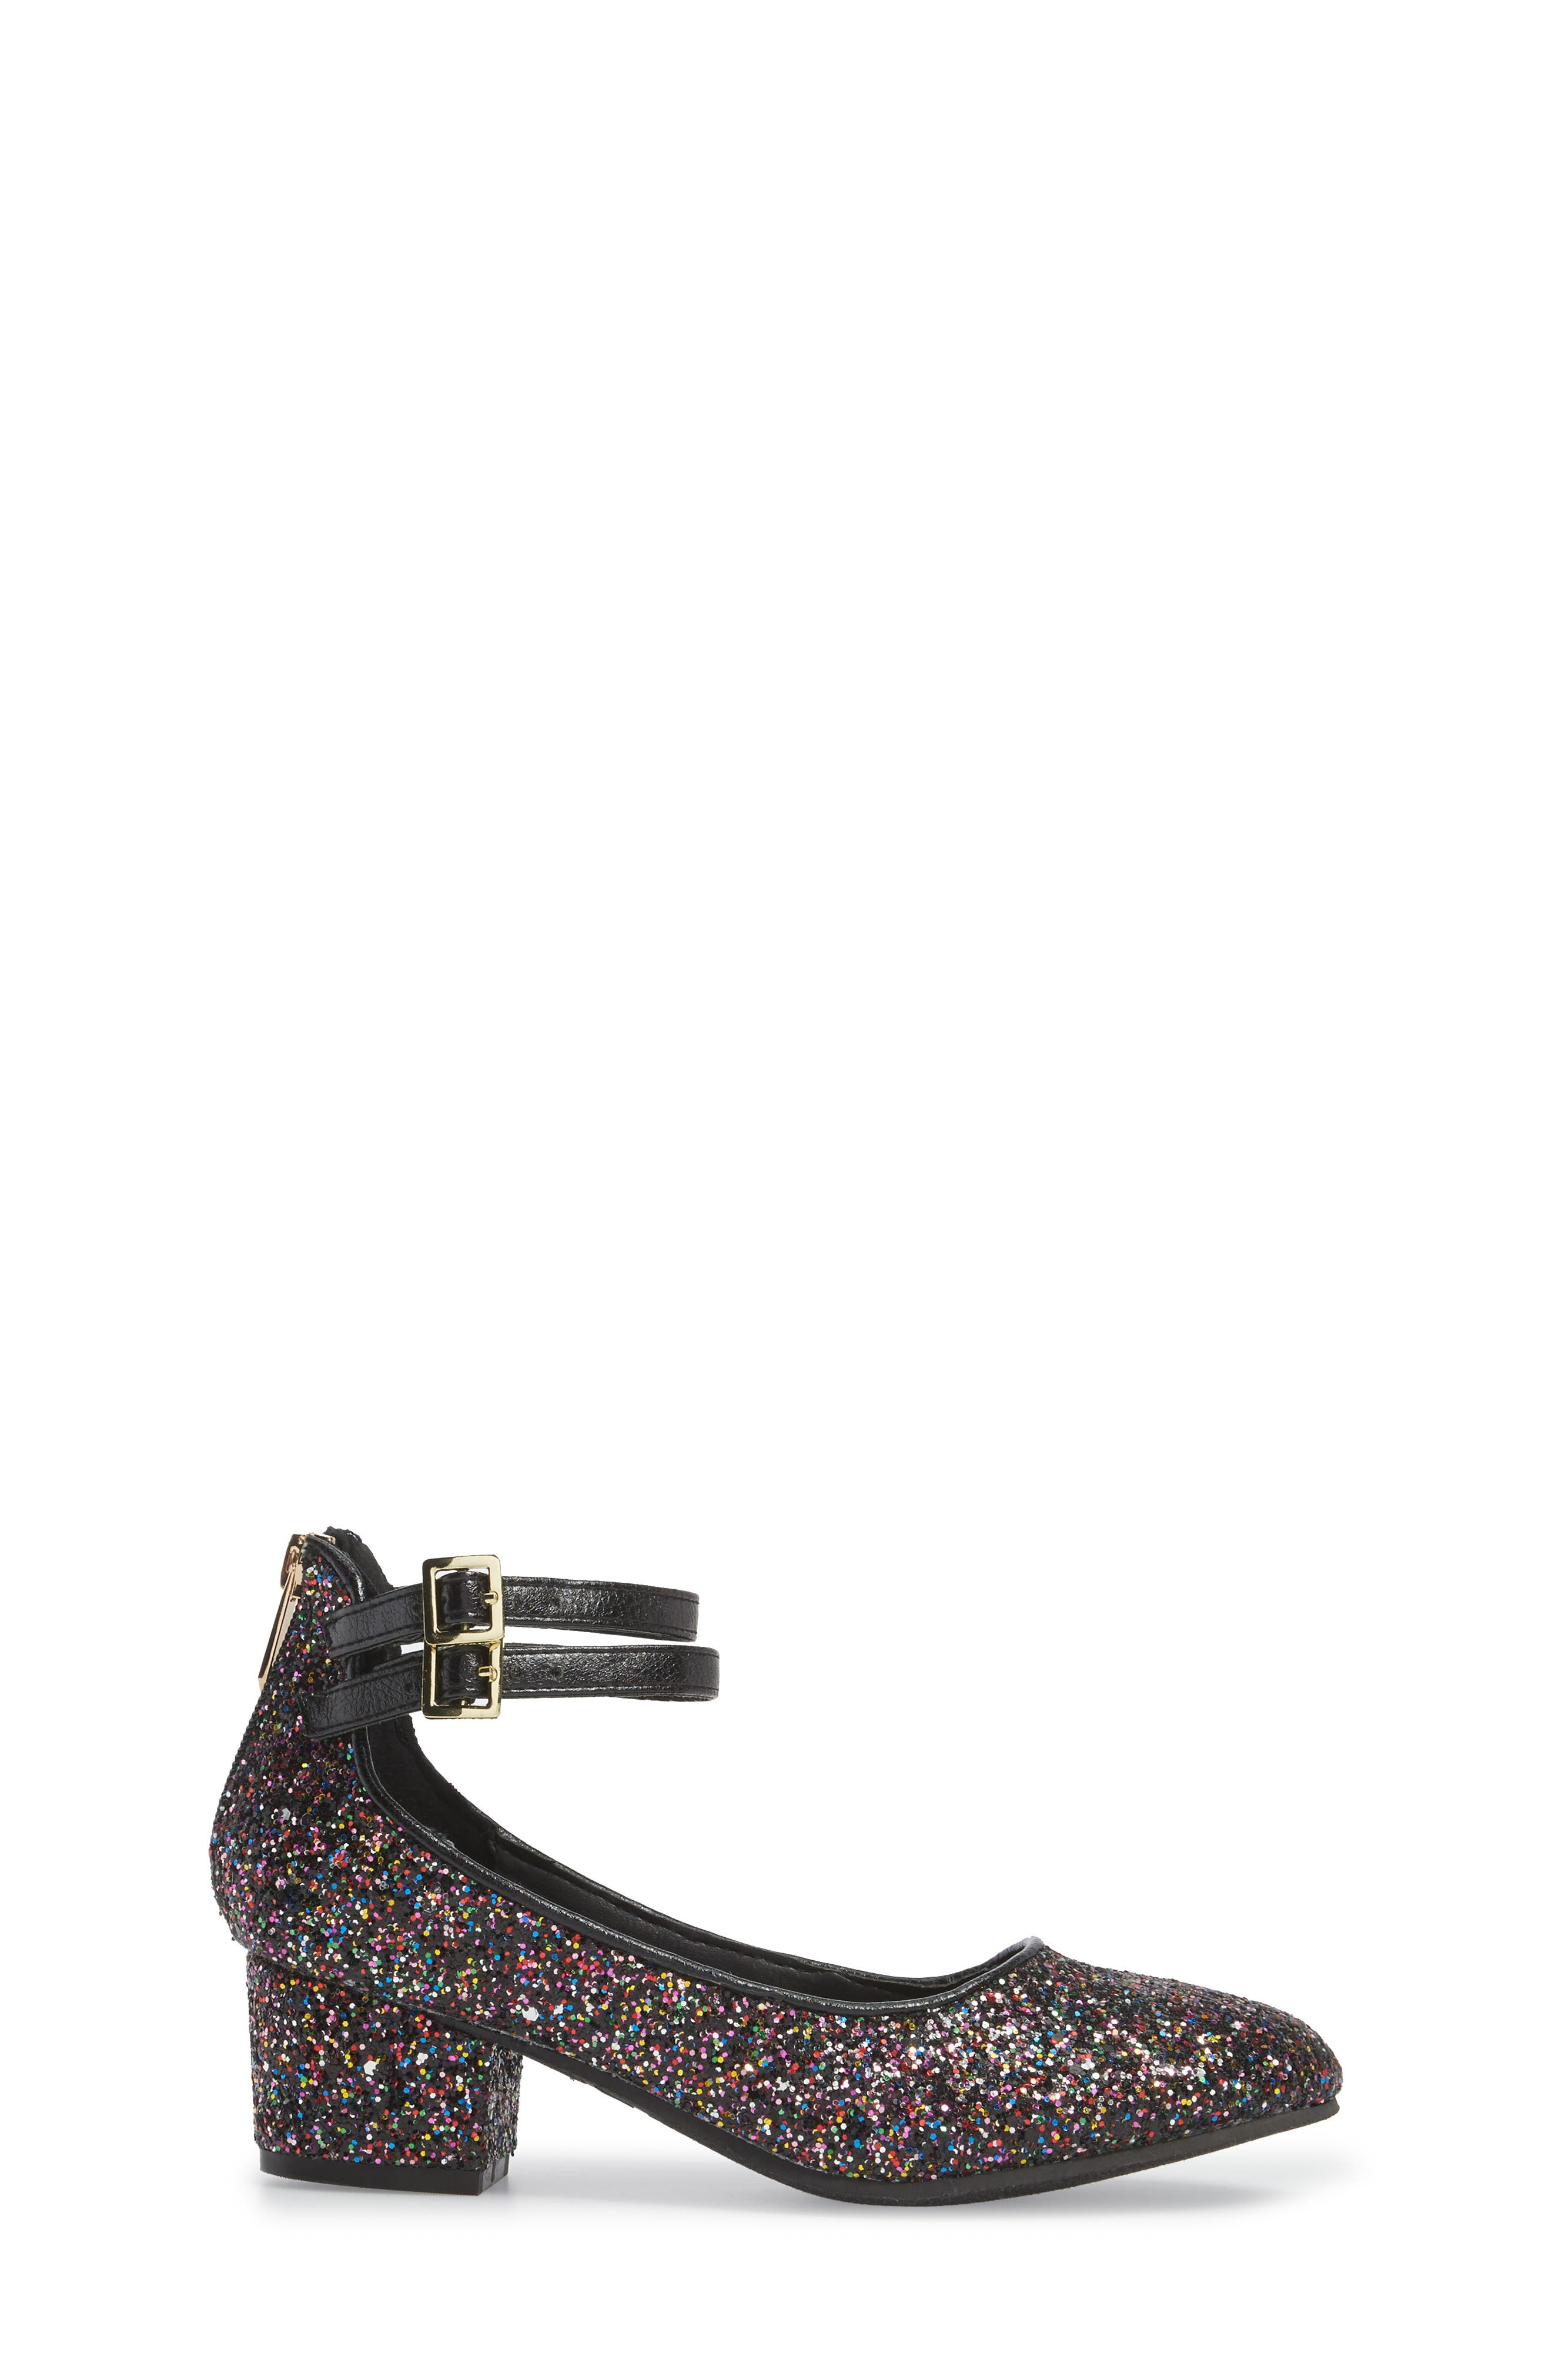 Evelyn Bree Ankle Strap Glitter Pump,                             Alternate thumbnail 3, color,                             001